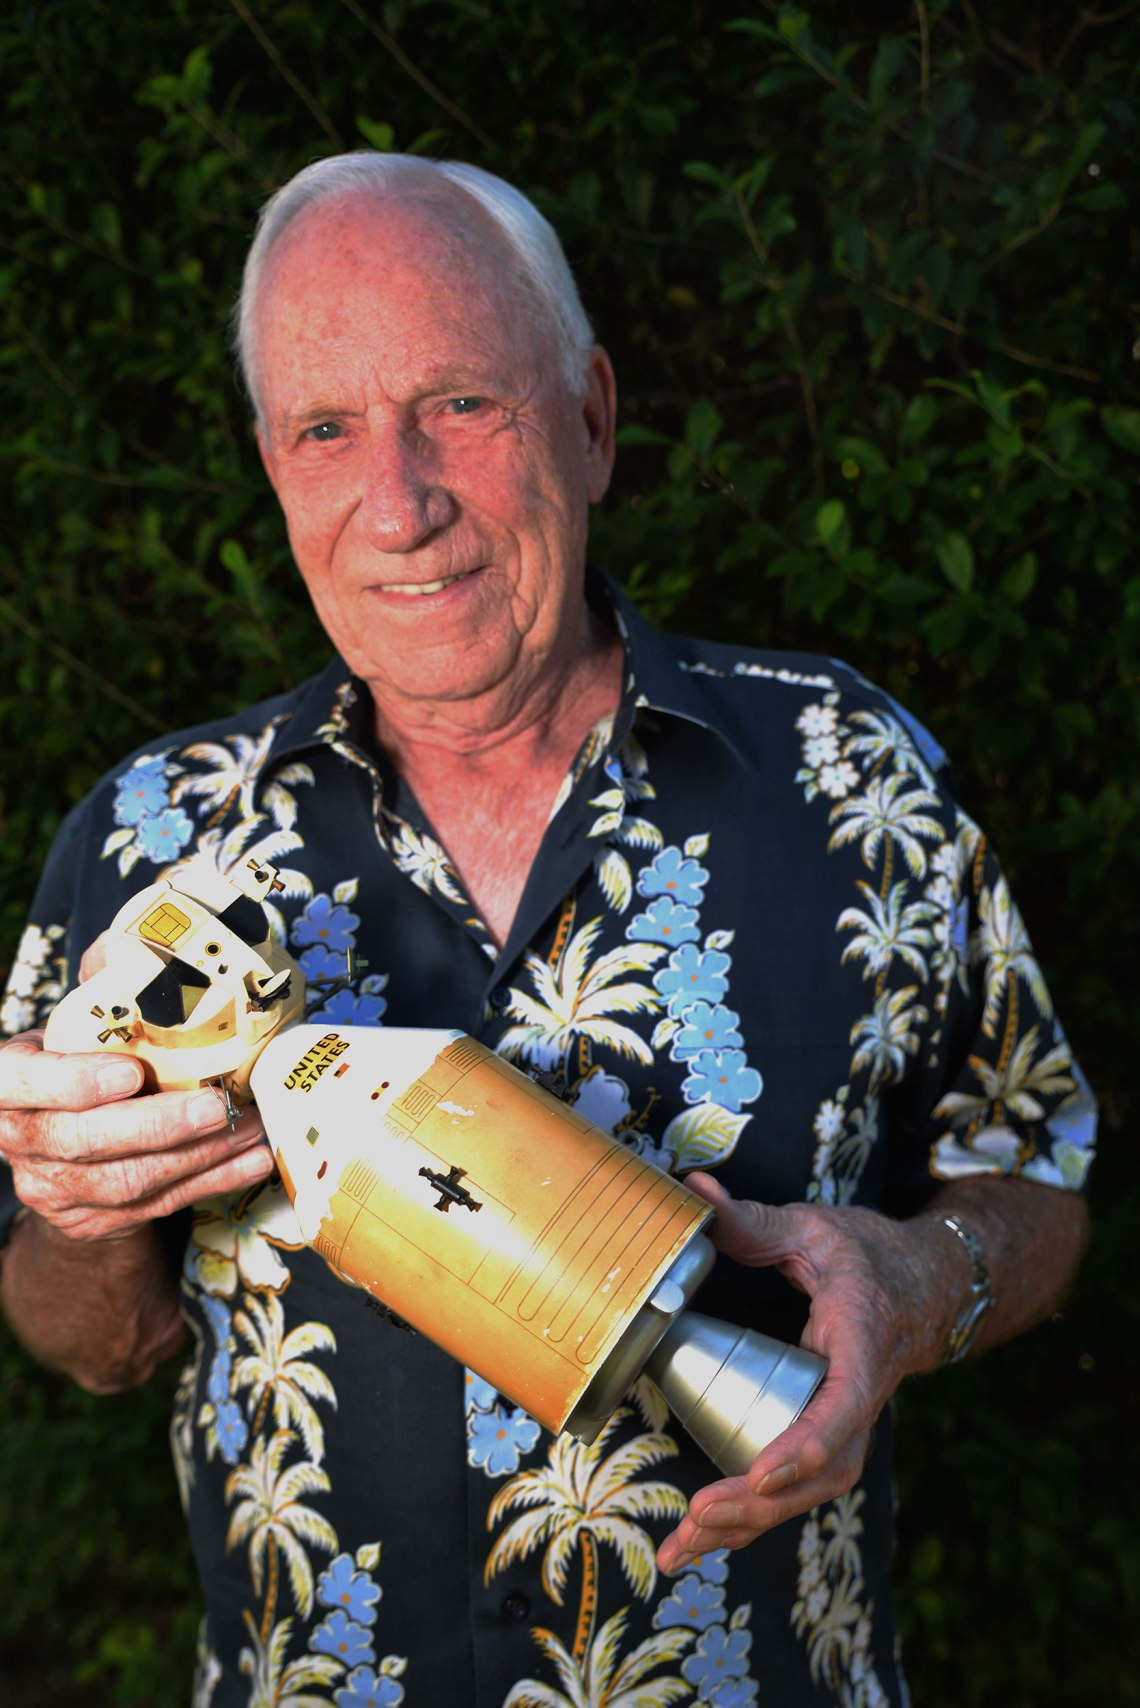 Al Worden with a model of the Command Module and Lunar Lander in 2014. Credit: Julian Leek